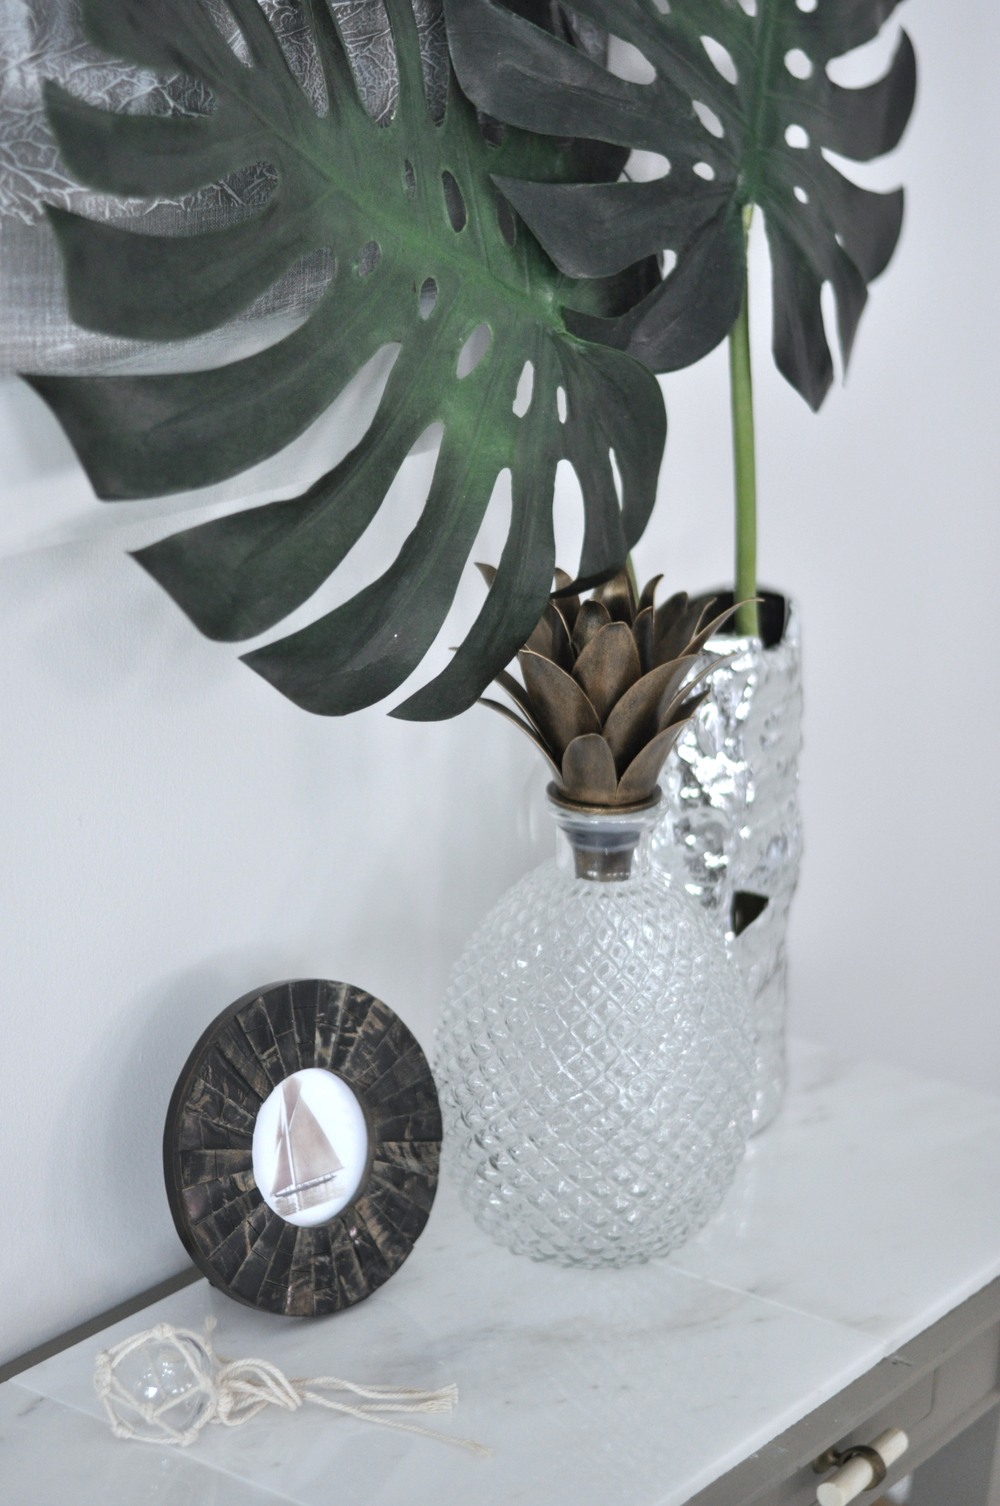 Lush Palm Leaves + A Curious Pineapple Artifact To Welcome Home